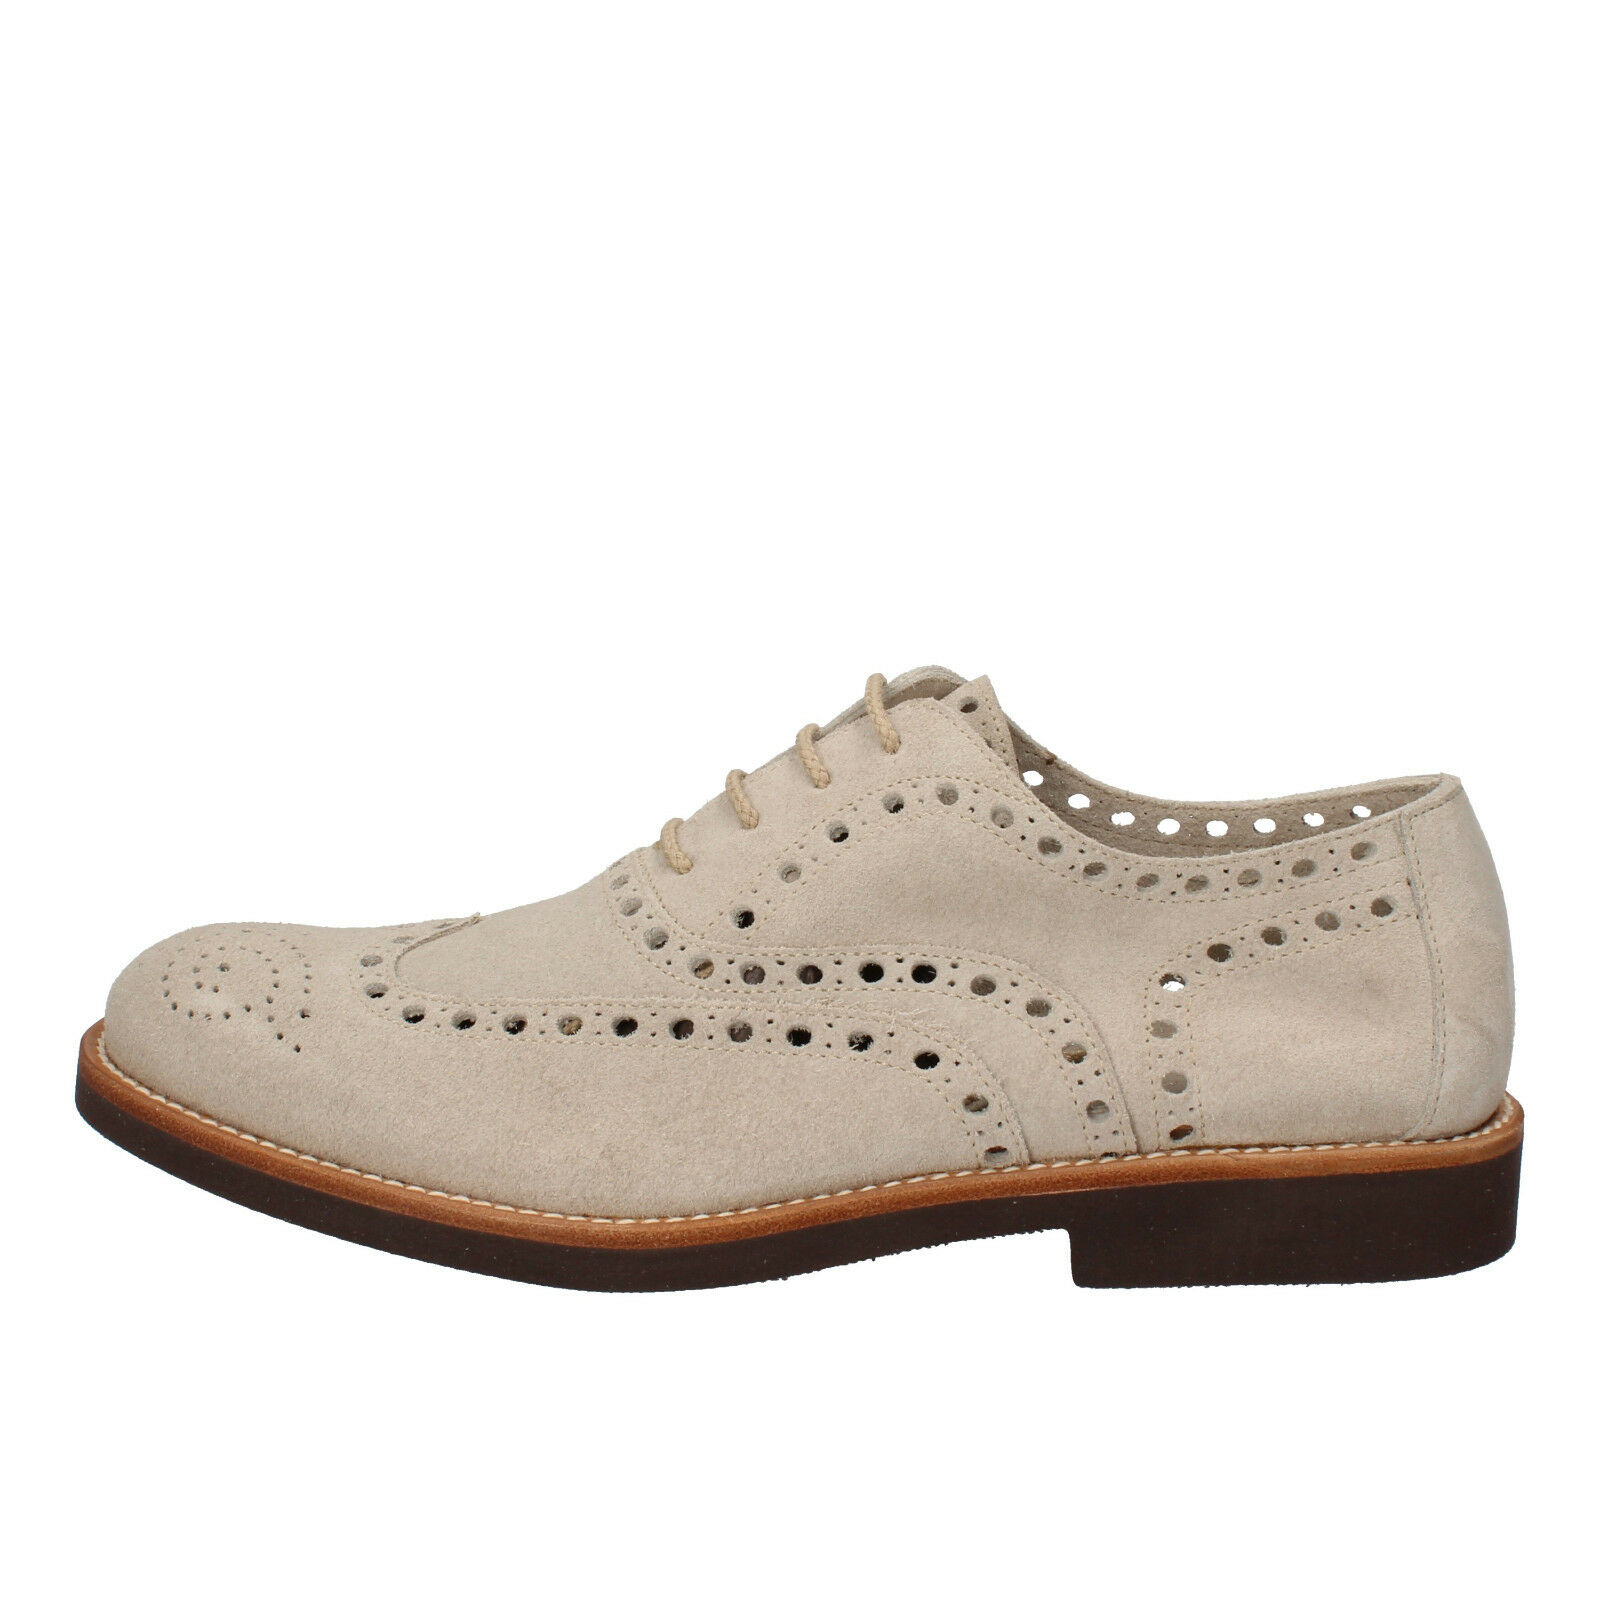 Men's shoes DI MELLA 8,5 (EU 41,5) elegant beige suede AD233-E